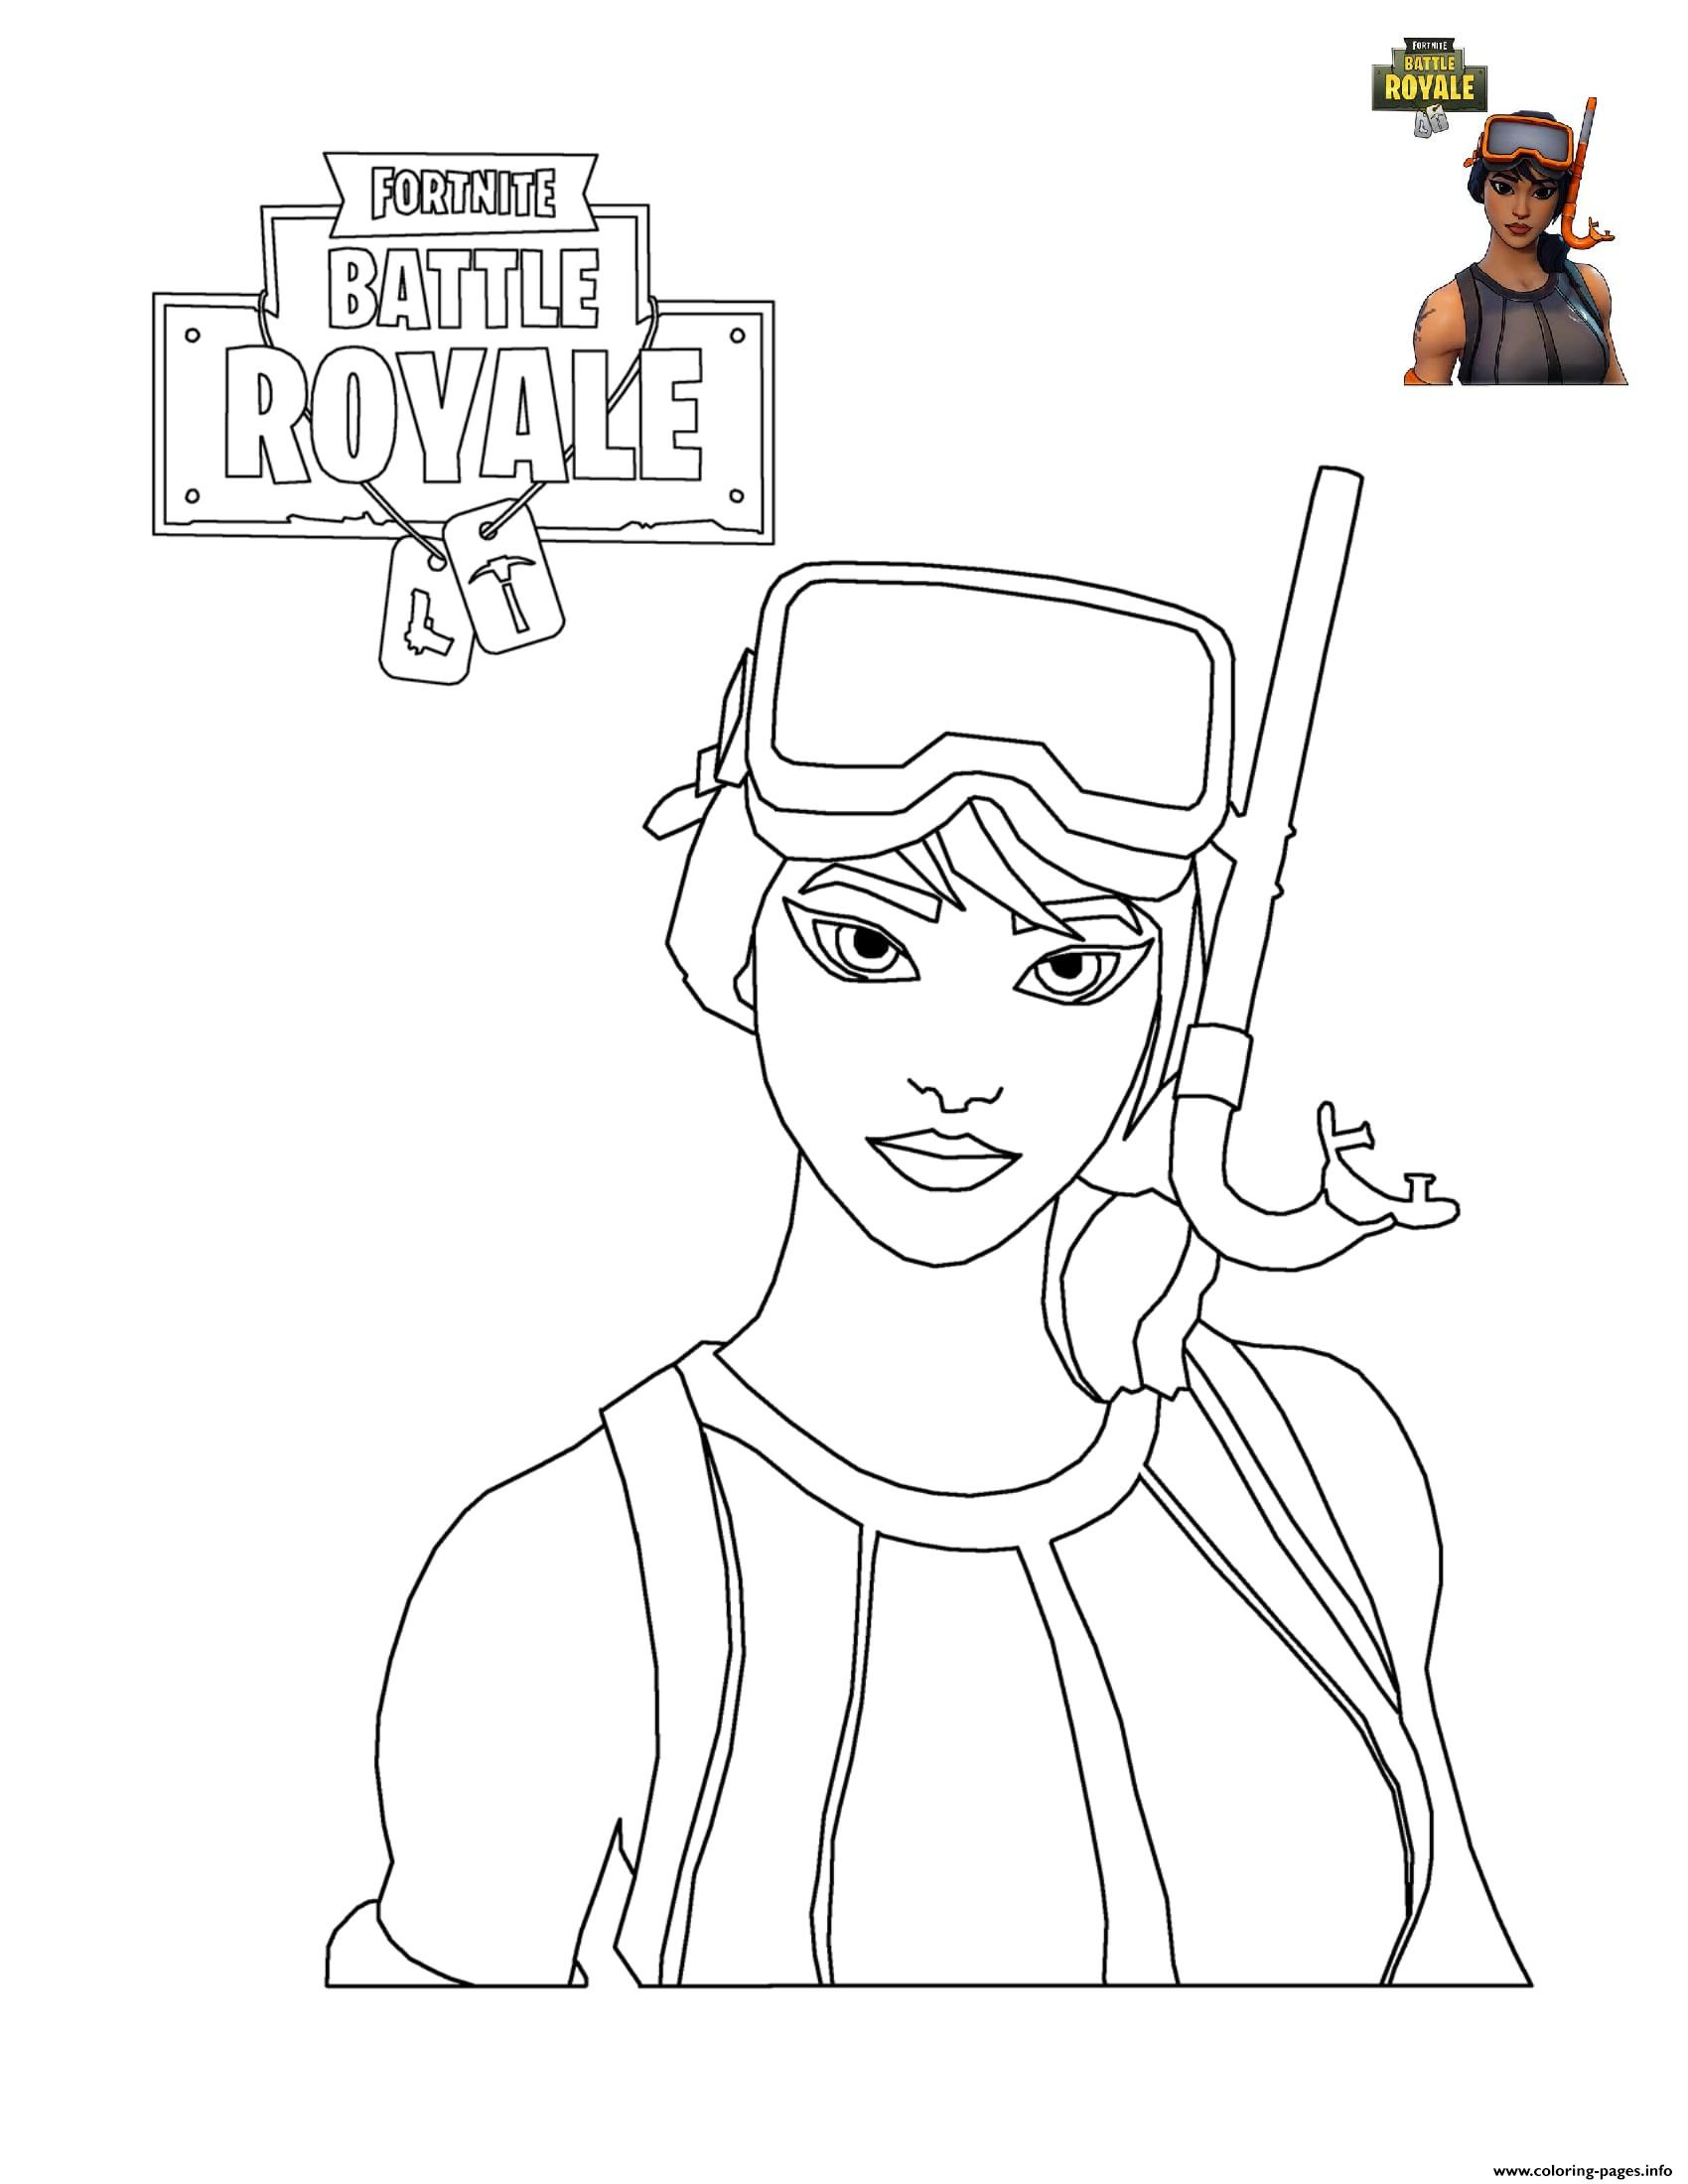 Modest image intended for fortnite coloring pages printable